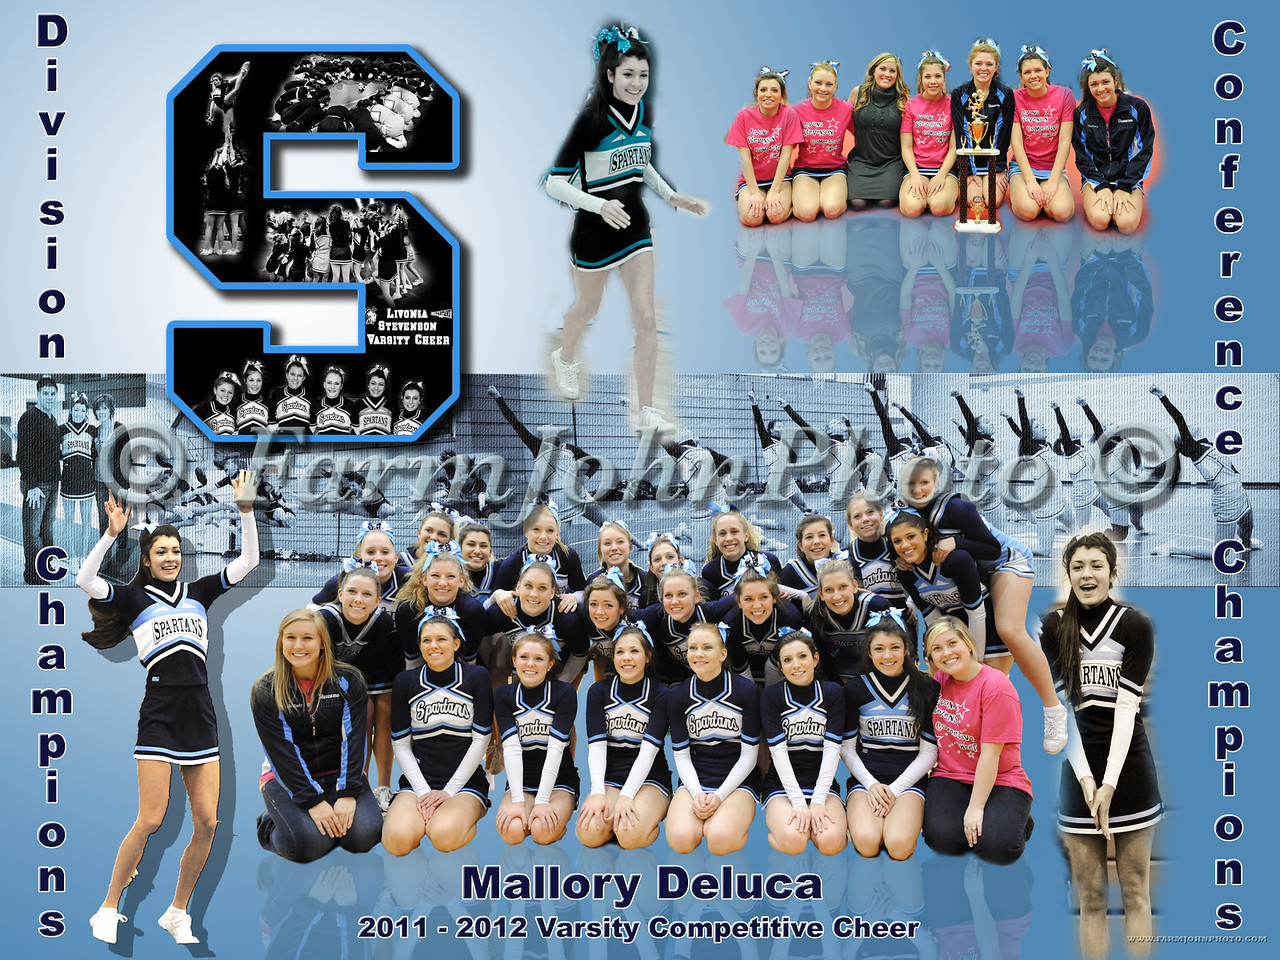 Mallory Deluca 24 x 18 Format Proof 4